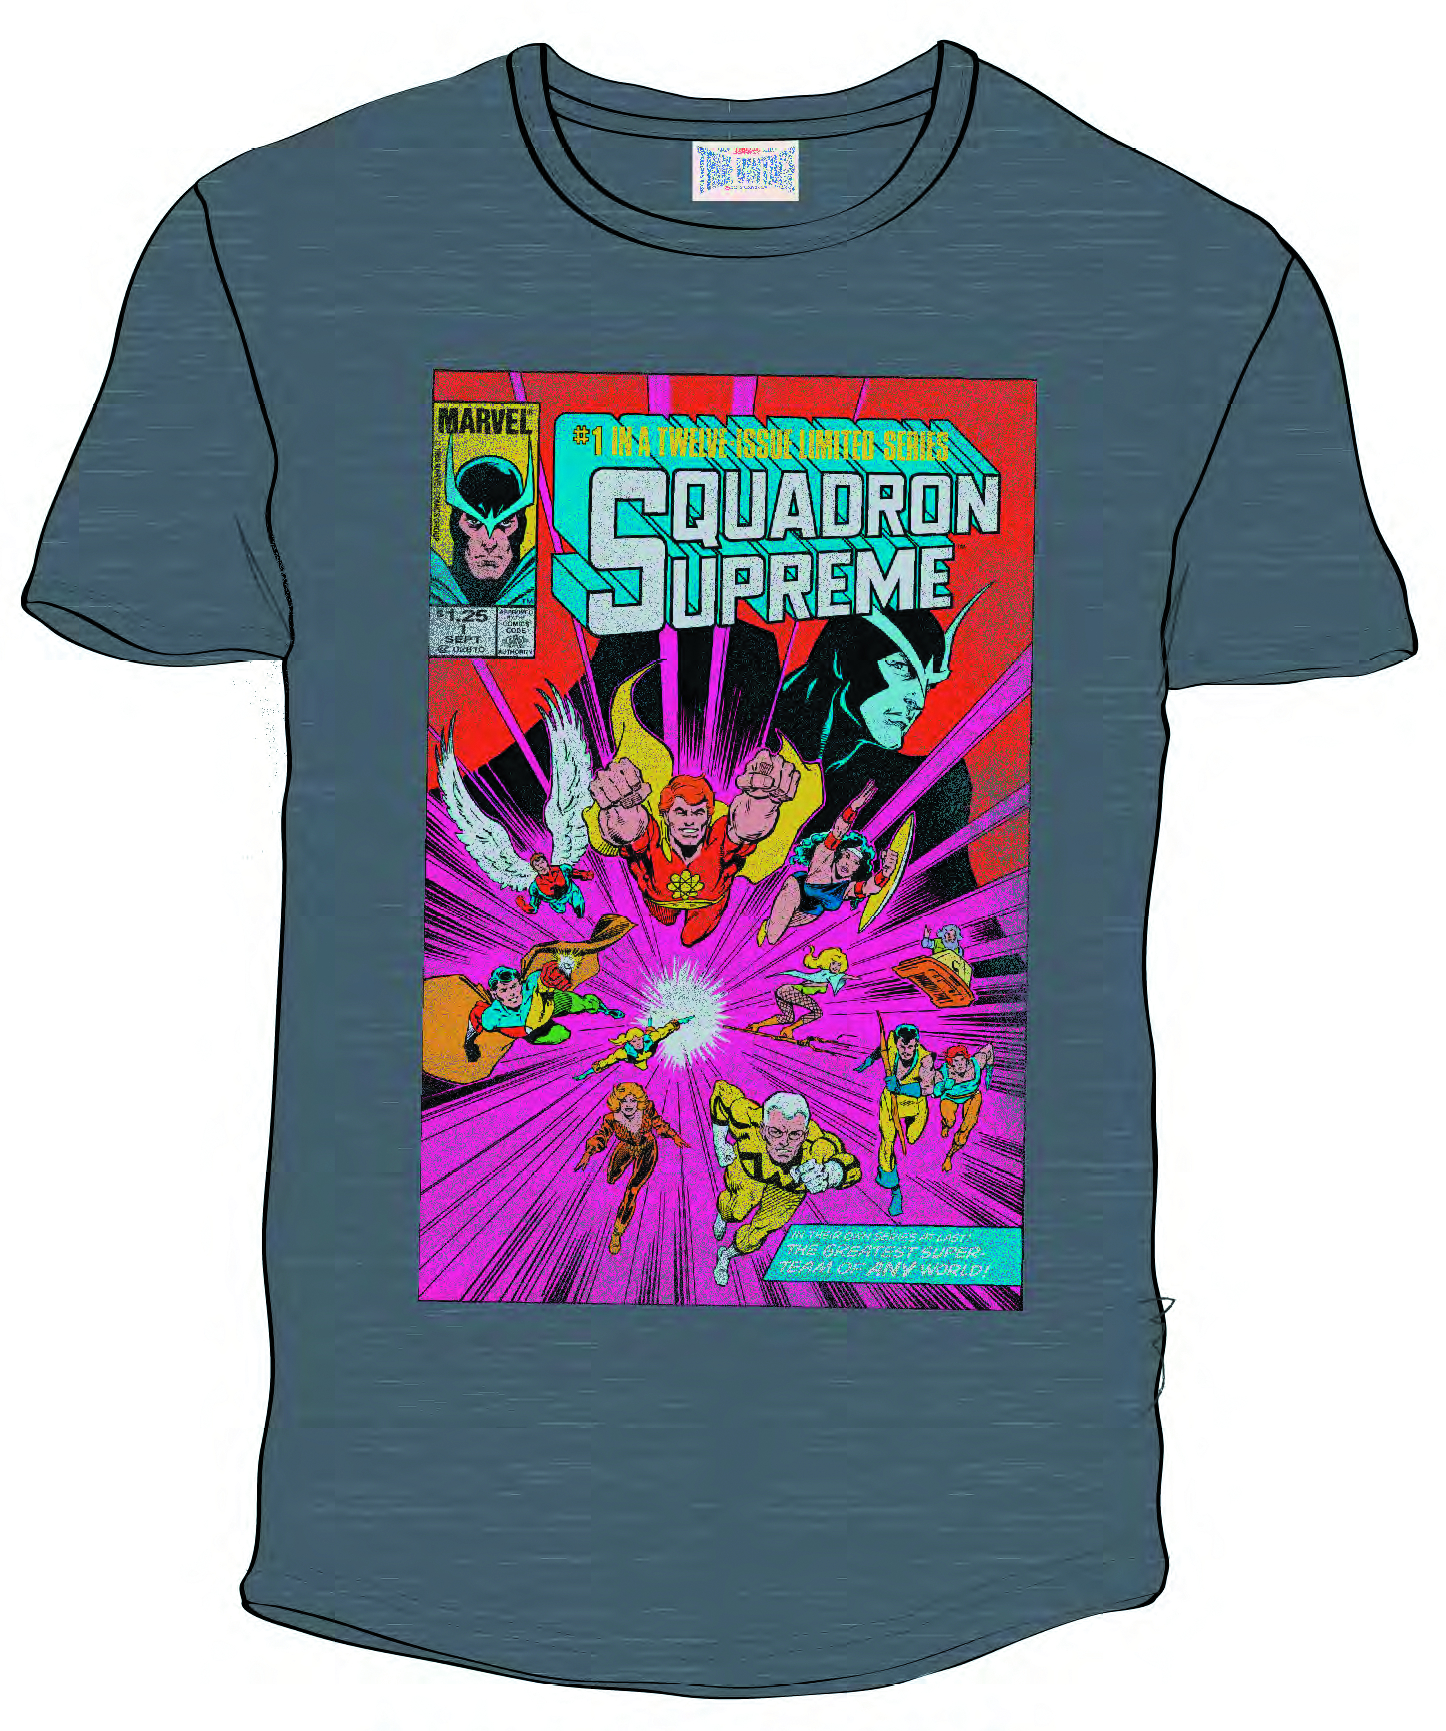 SQUADRON SUPREME PX PLATINUM HEATHER T/S SM